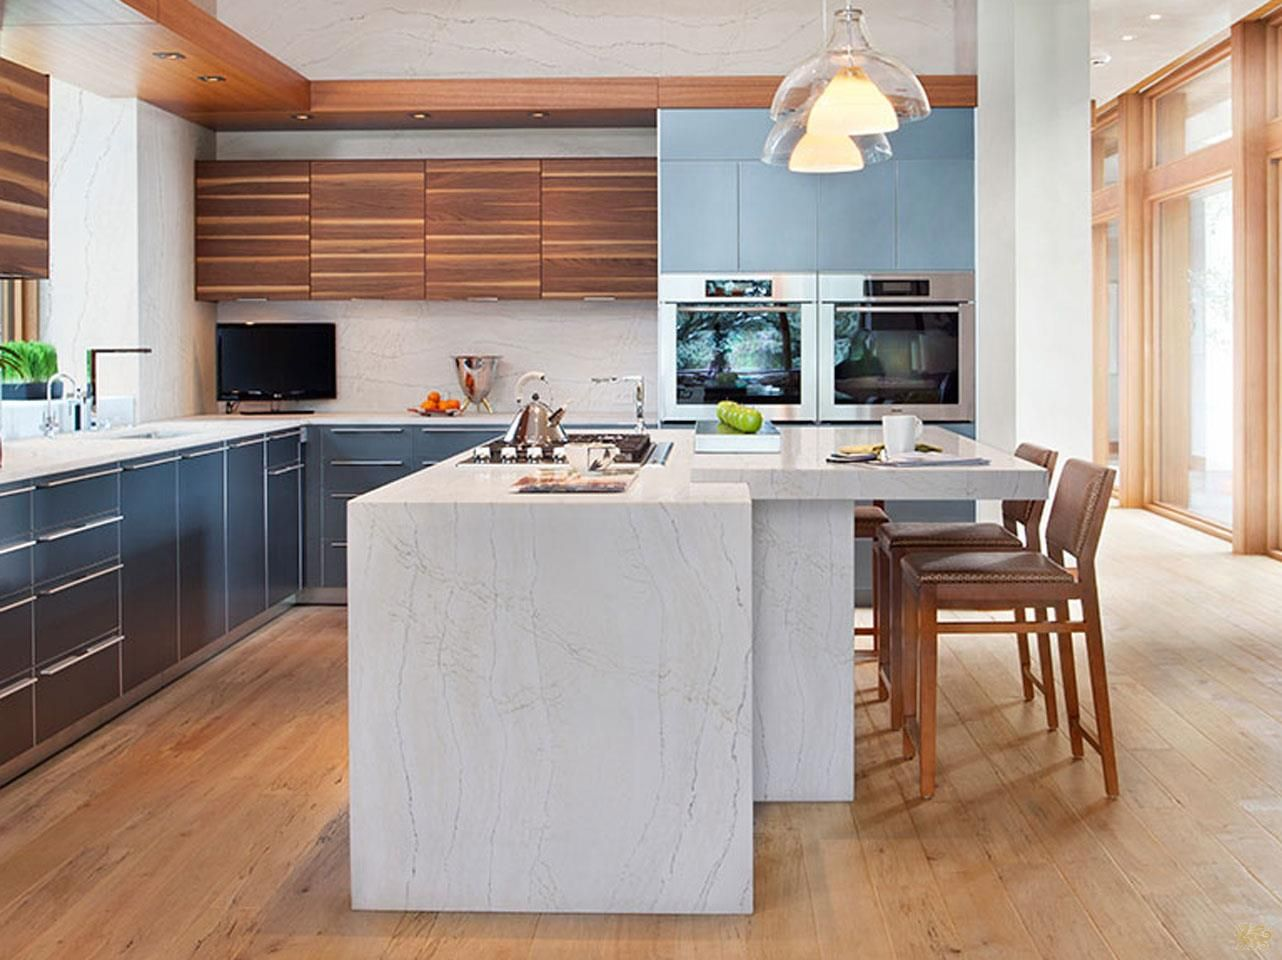 Cambria clyde kitchen and bathroom countertop color - Cambria S Must See Marble Collection